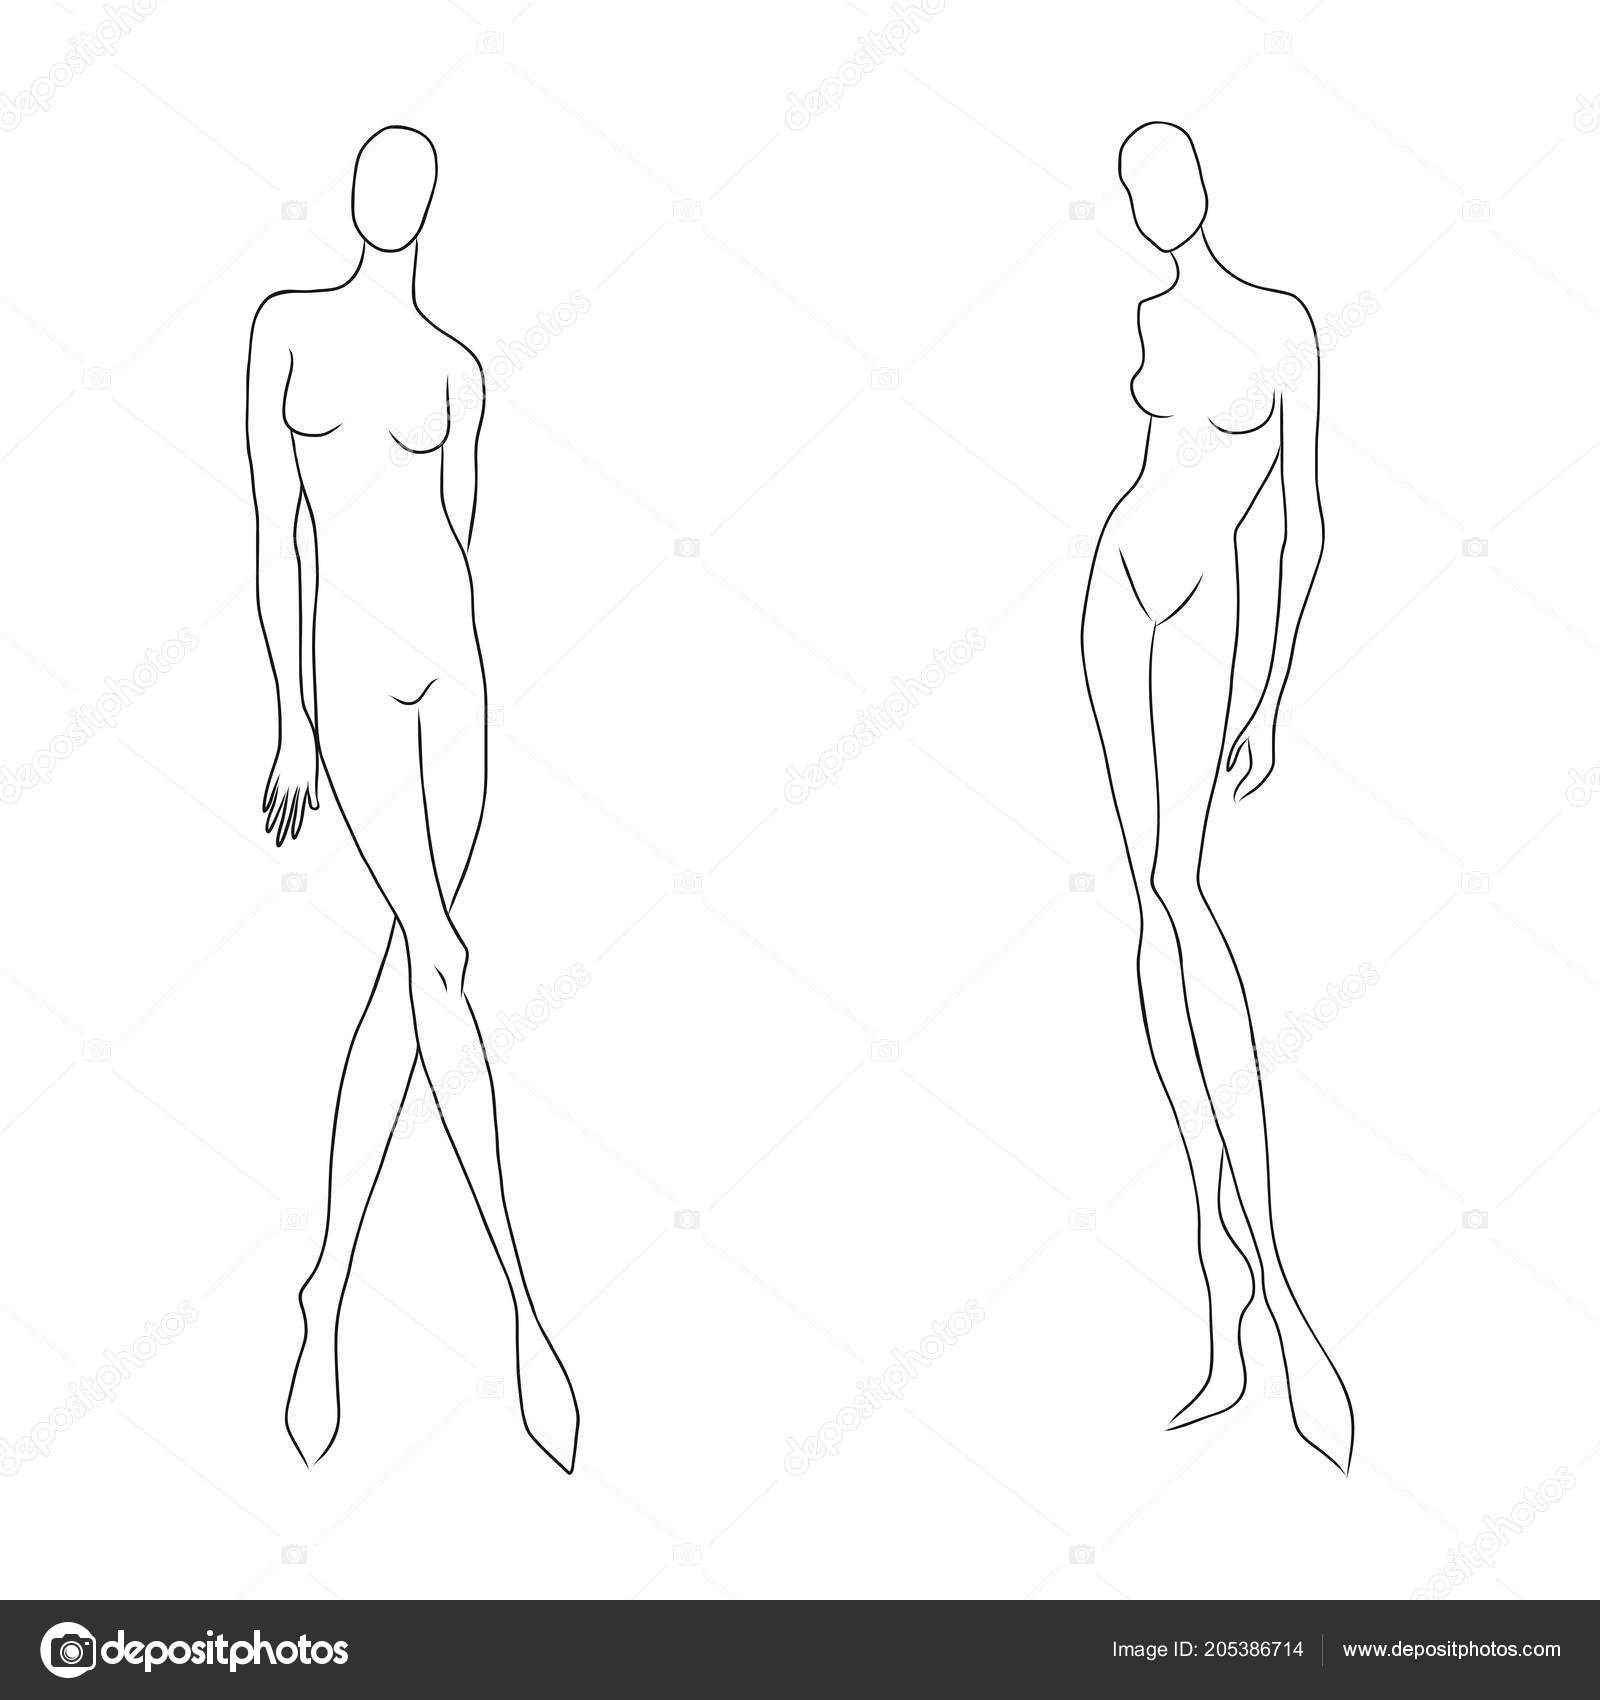 Body Sketch Outline Womens Figure Sketch Different Poses Template For Drawing For Designers Of Clothes Nd Constructors Vector Outline Girl Model Template For Fashion Sketching Fashion Illustration Stock Vector C Medunika 205386714